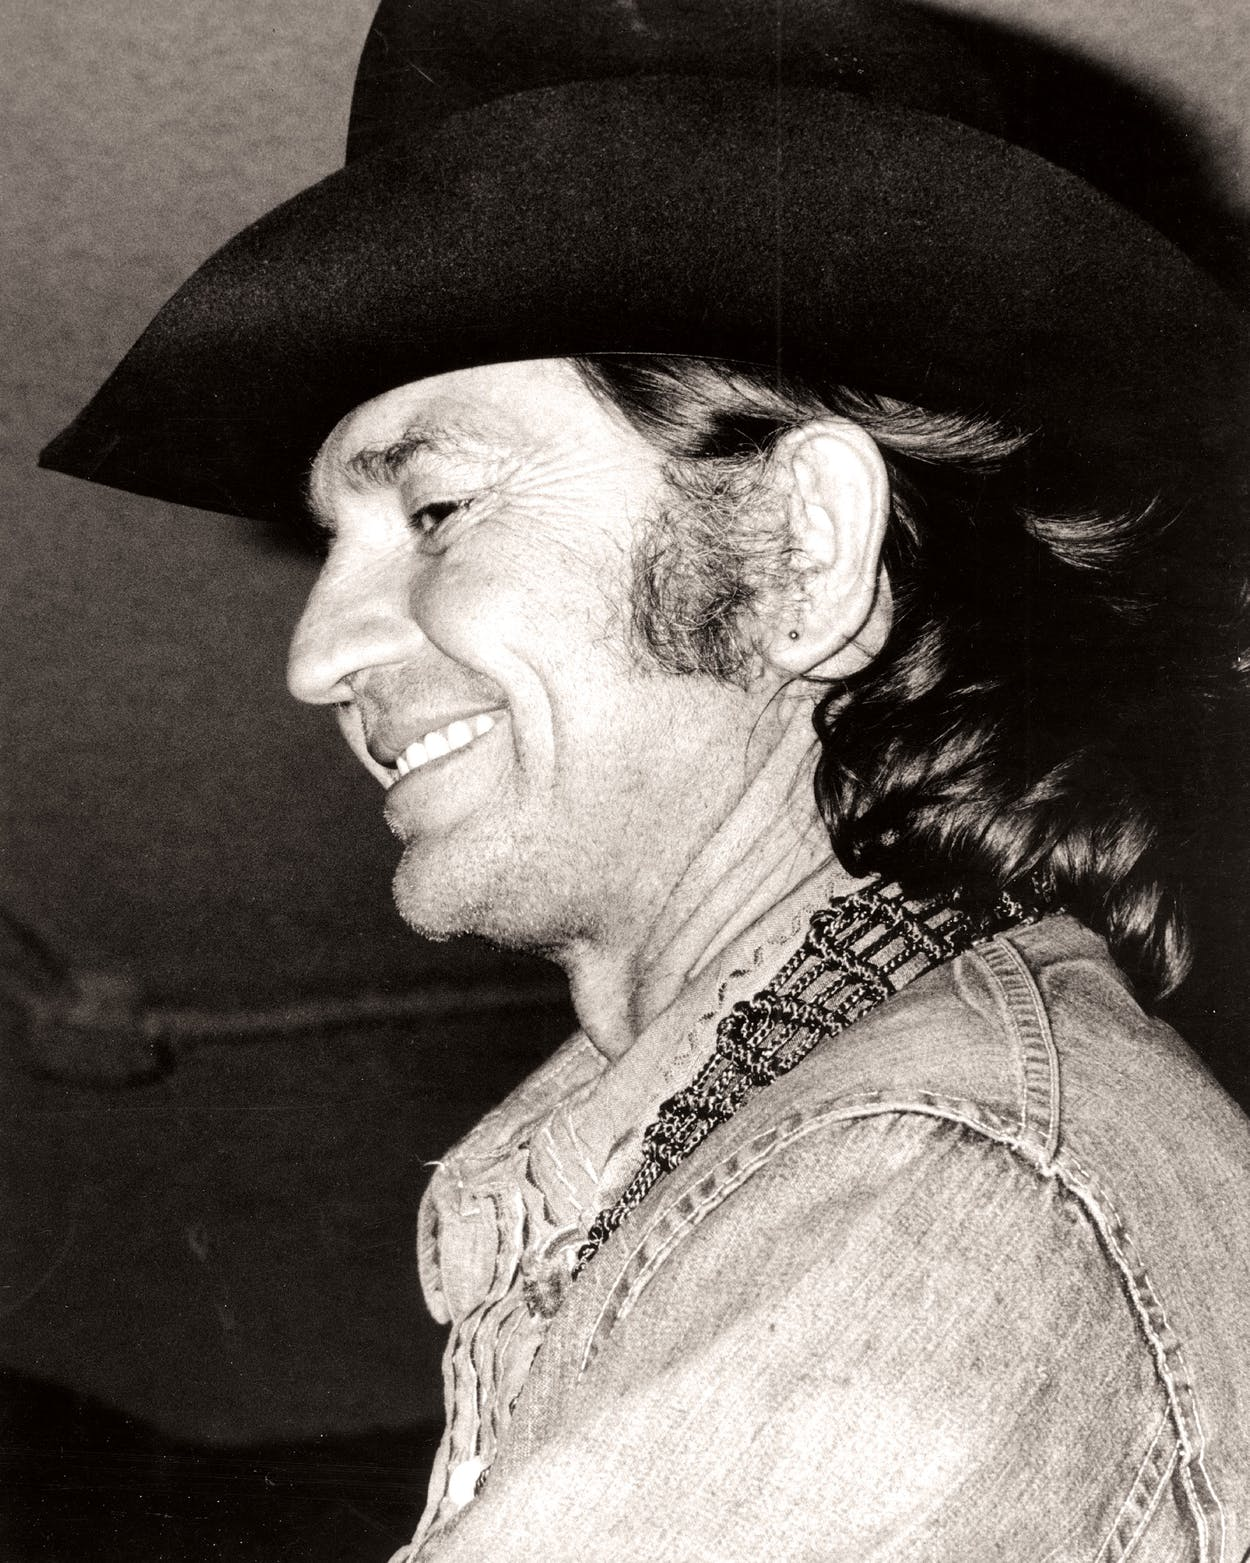 Country singer/songwriter Willie Nelson performs onstage in circa 1974.